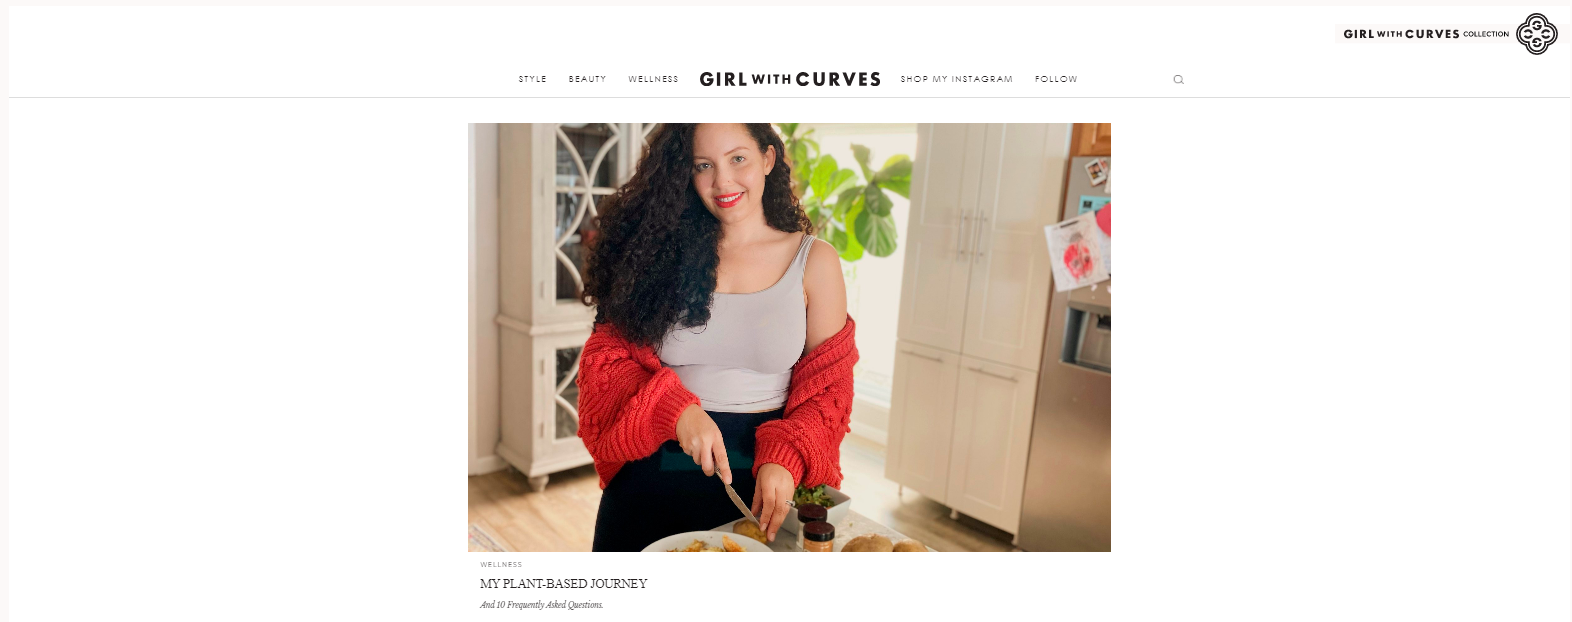 Girl with curves: Style blog and website